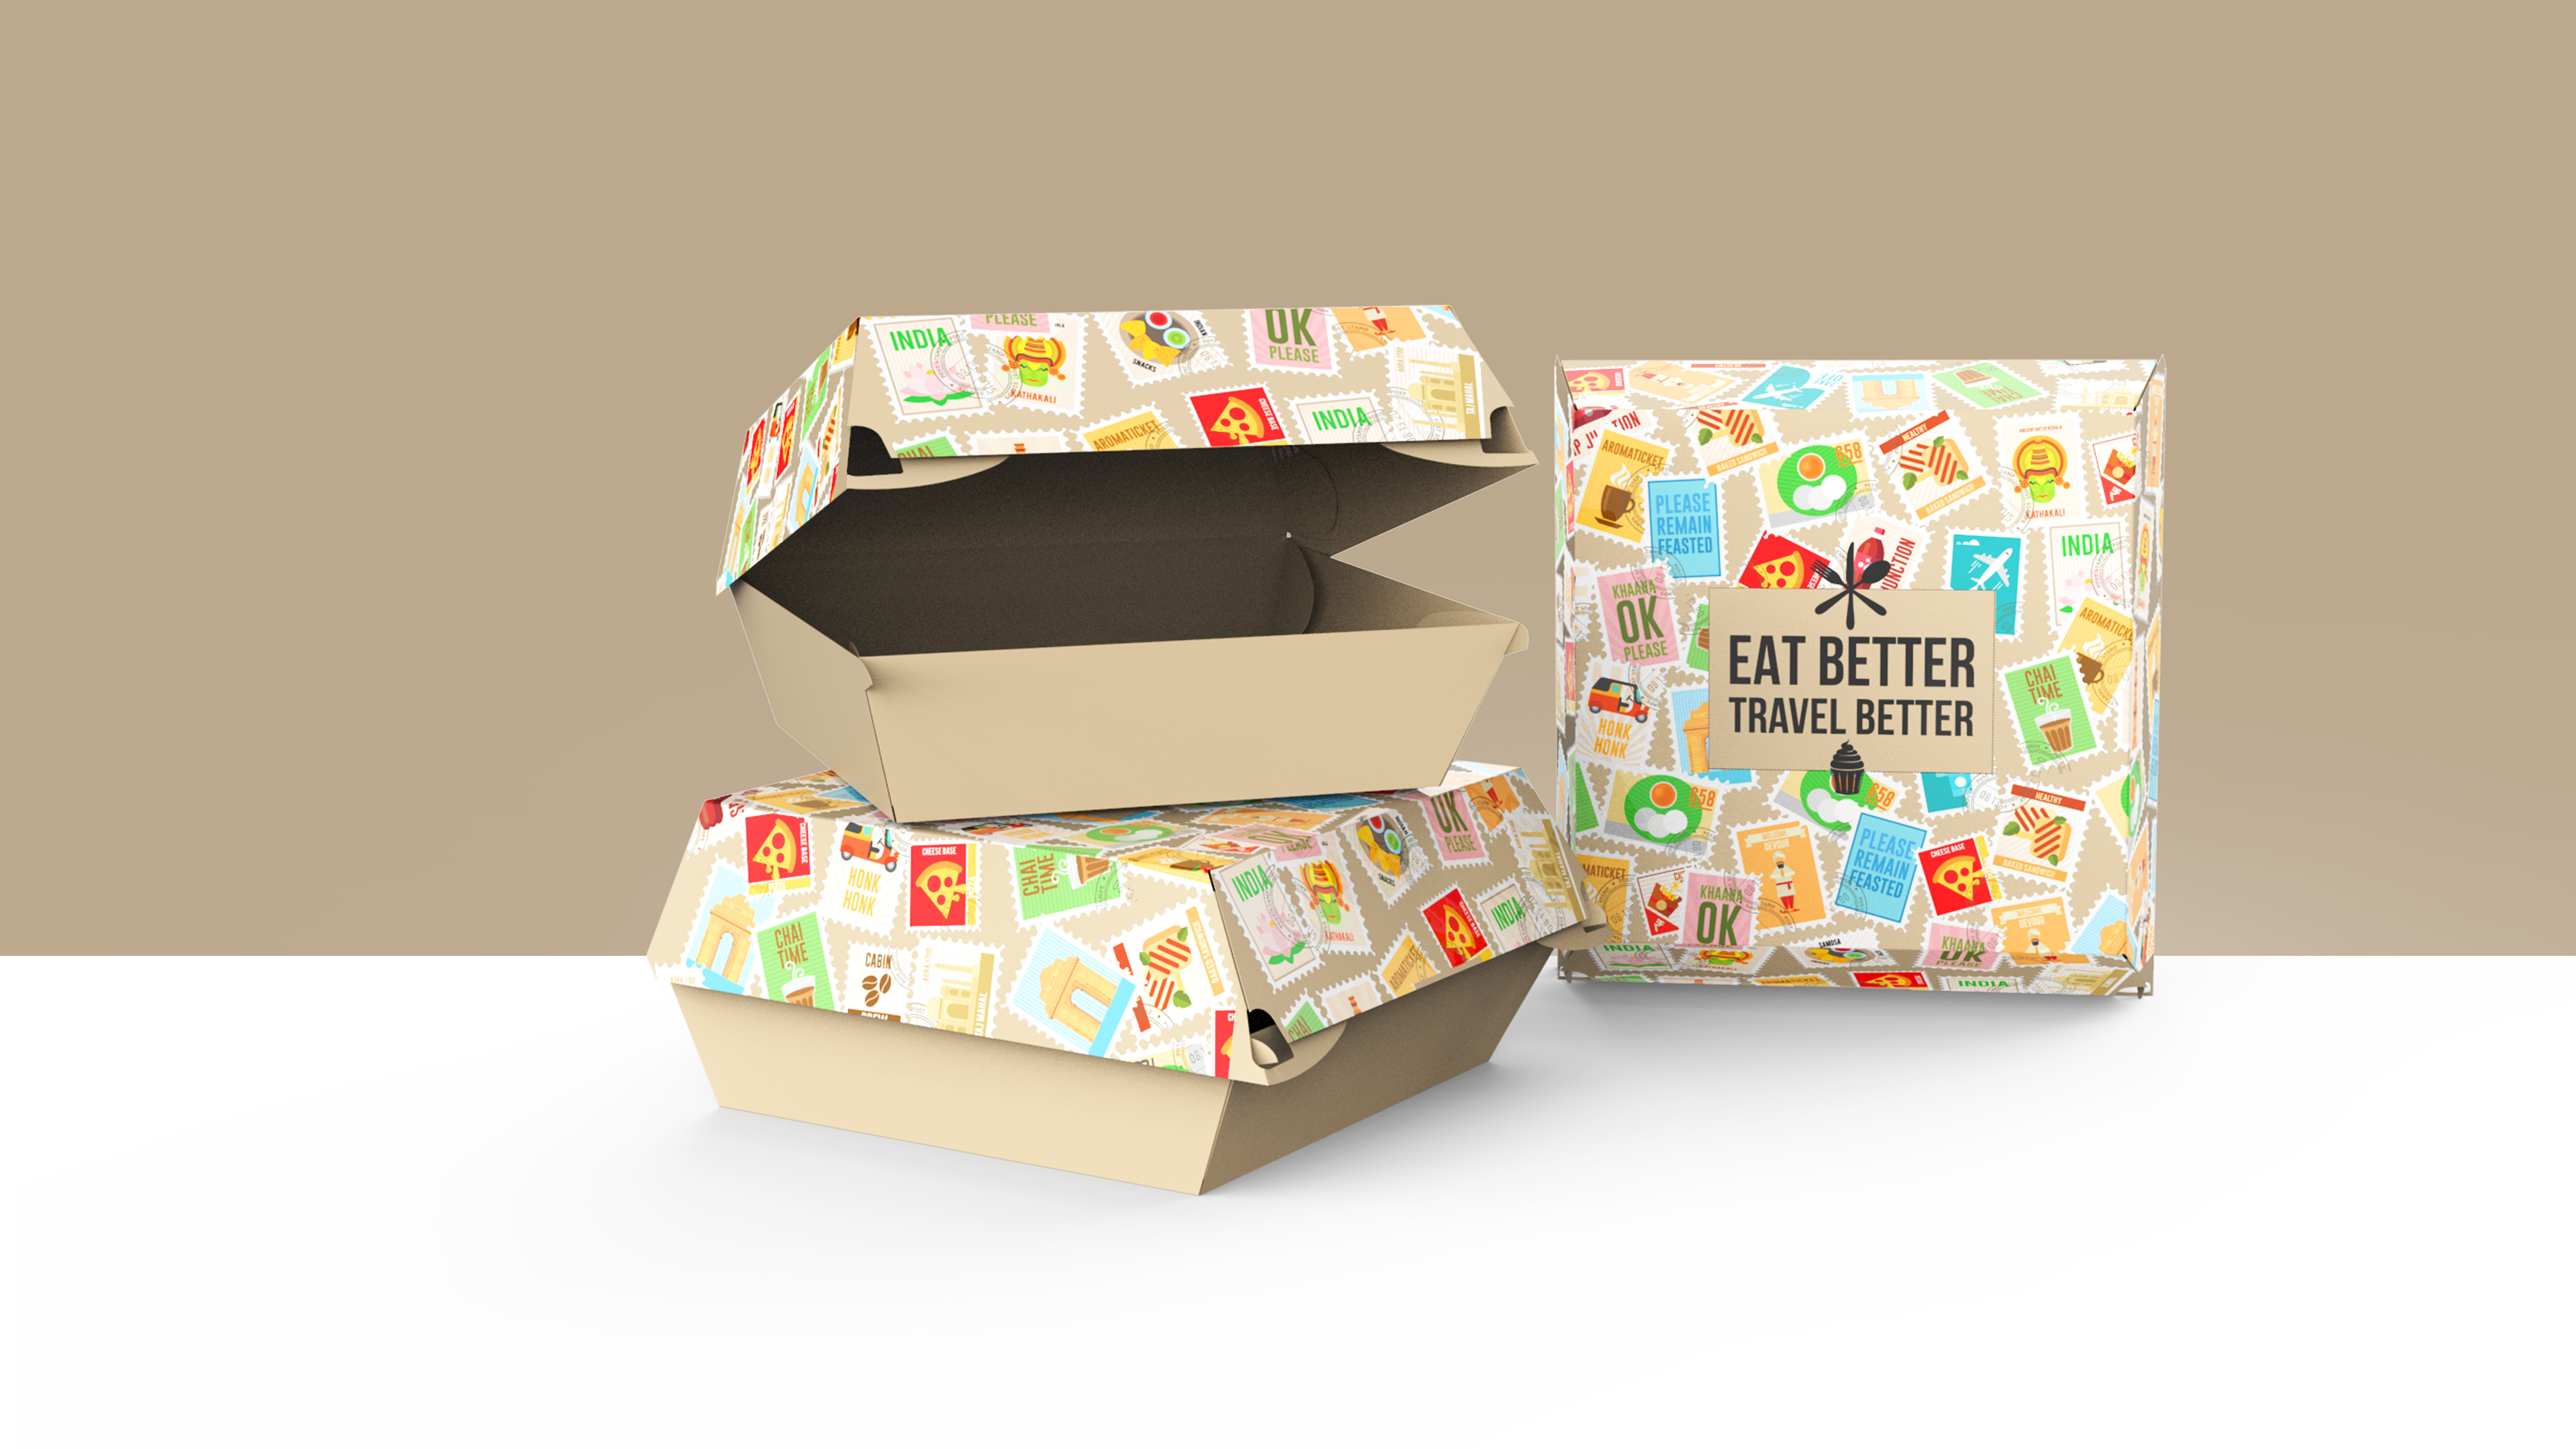 Food Packaging for Takeaway at Airports - Travel Food Services